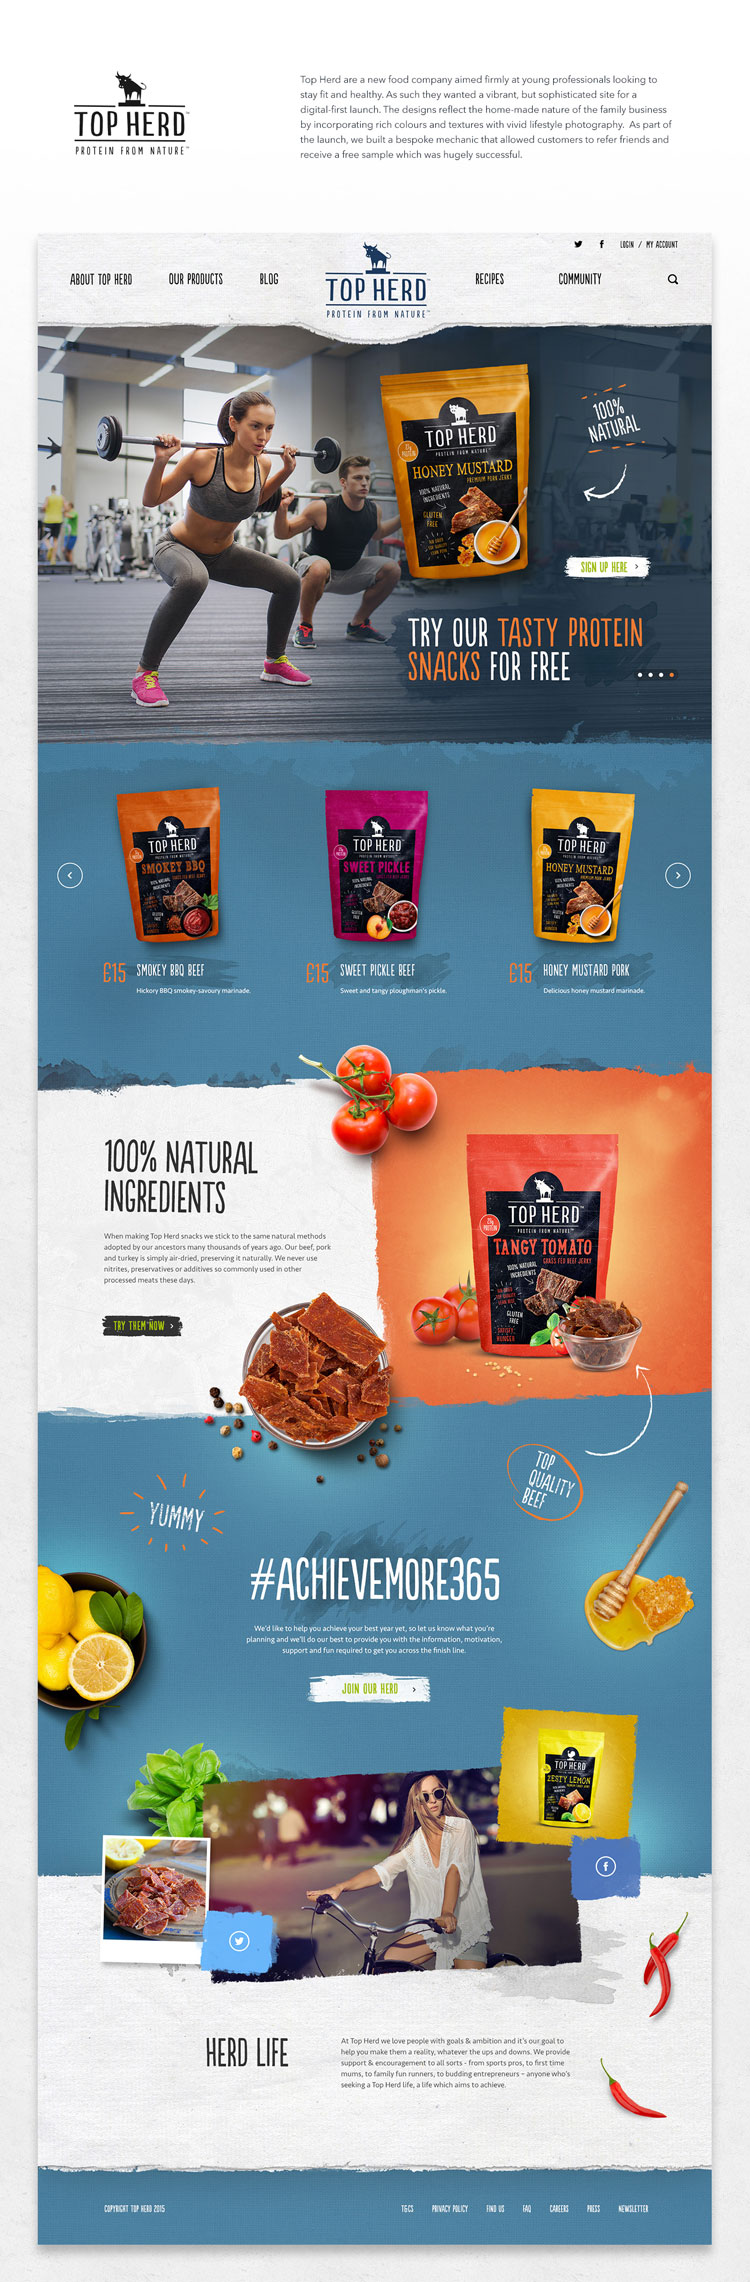 Creative-Newest-Website-Designs-for-Inspiration-001